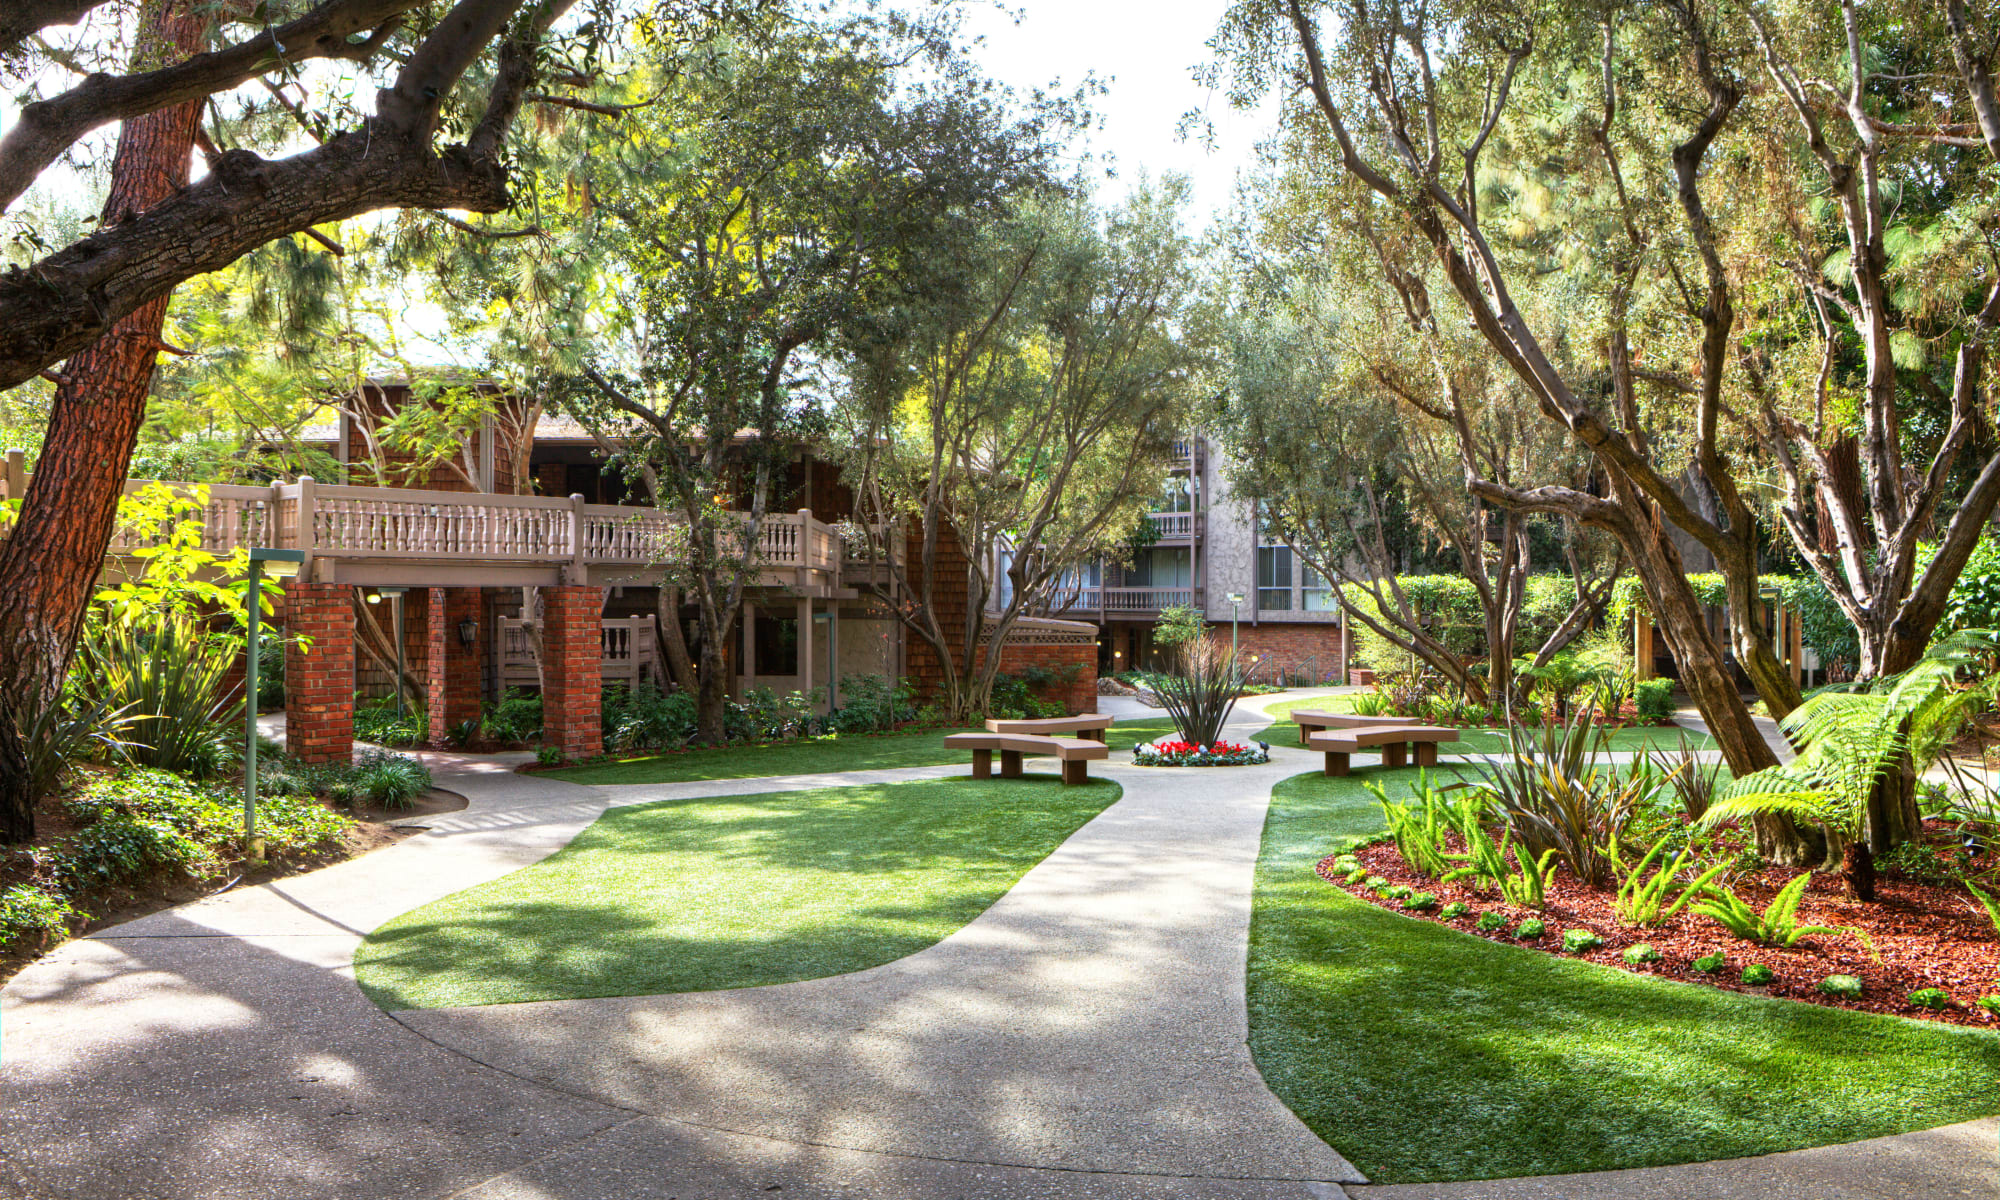 Professionally maintained landscaping around the community at The Meadows in Culver City, California